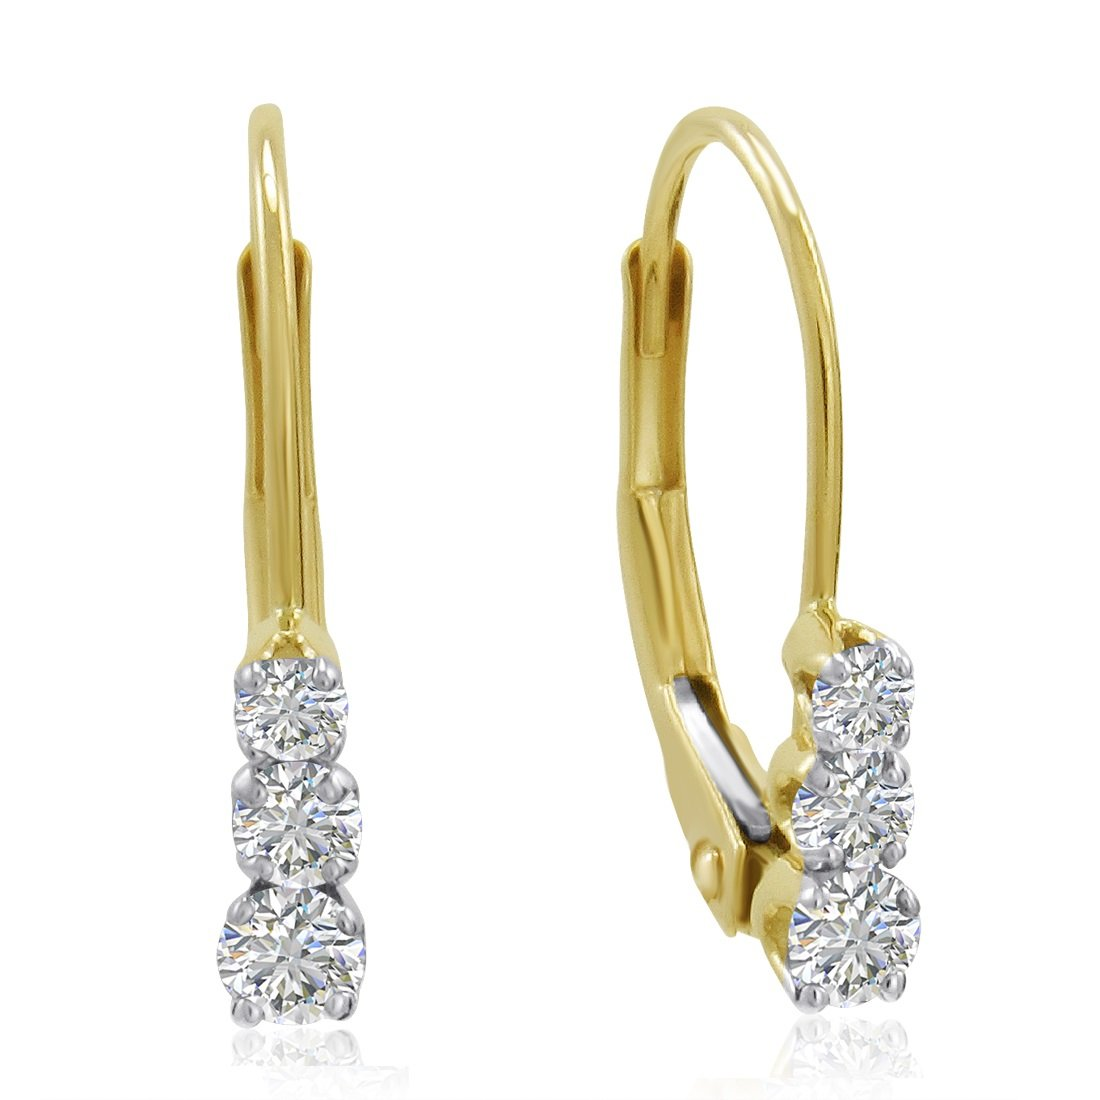 AGS Certified 10K Yellow Gold Three-Stone Diamond Leverback Earrings 1/4cttw